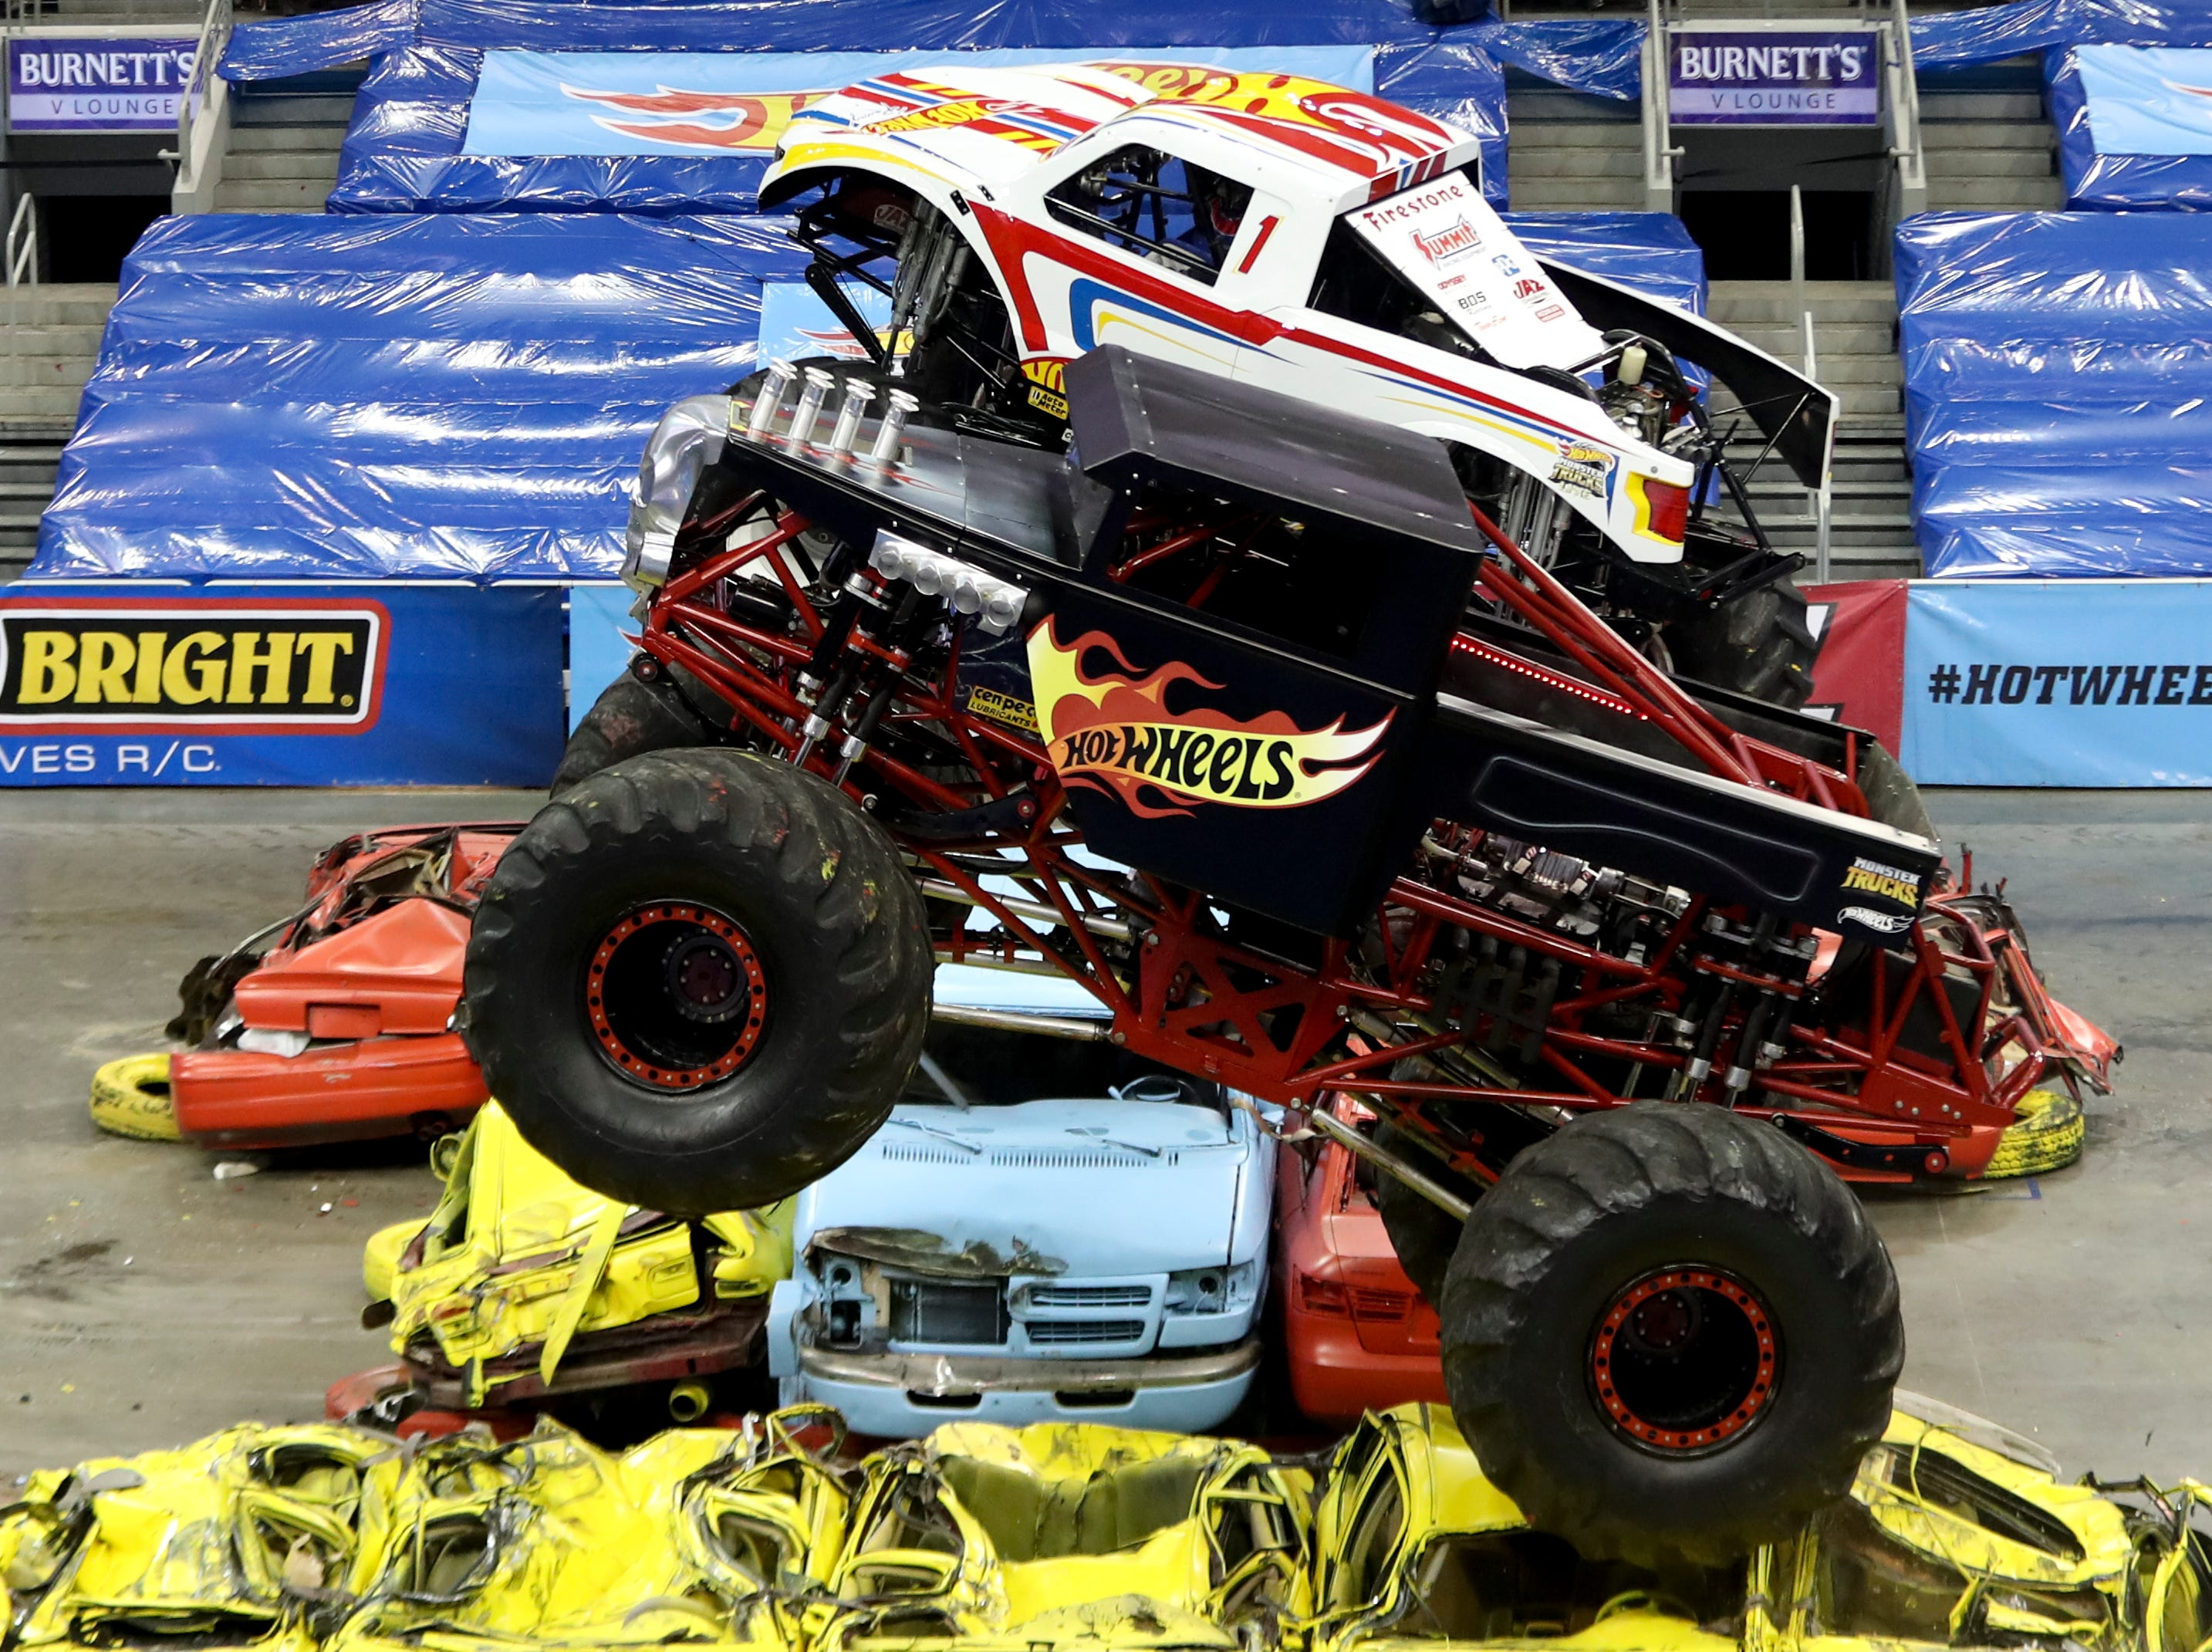 Cody Holman, driver of Bone Shaker, and Christian Norman, driver of Hot Wheels Racing #1, compete at the Hot Wheels Monster Trucks show at the KFC Yum Center on March 16.